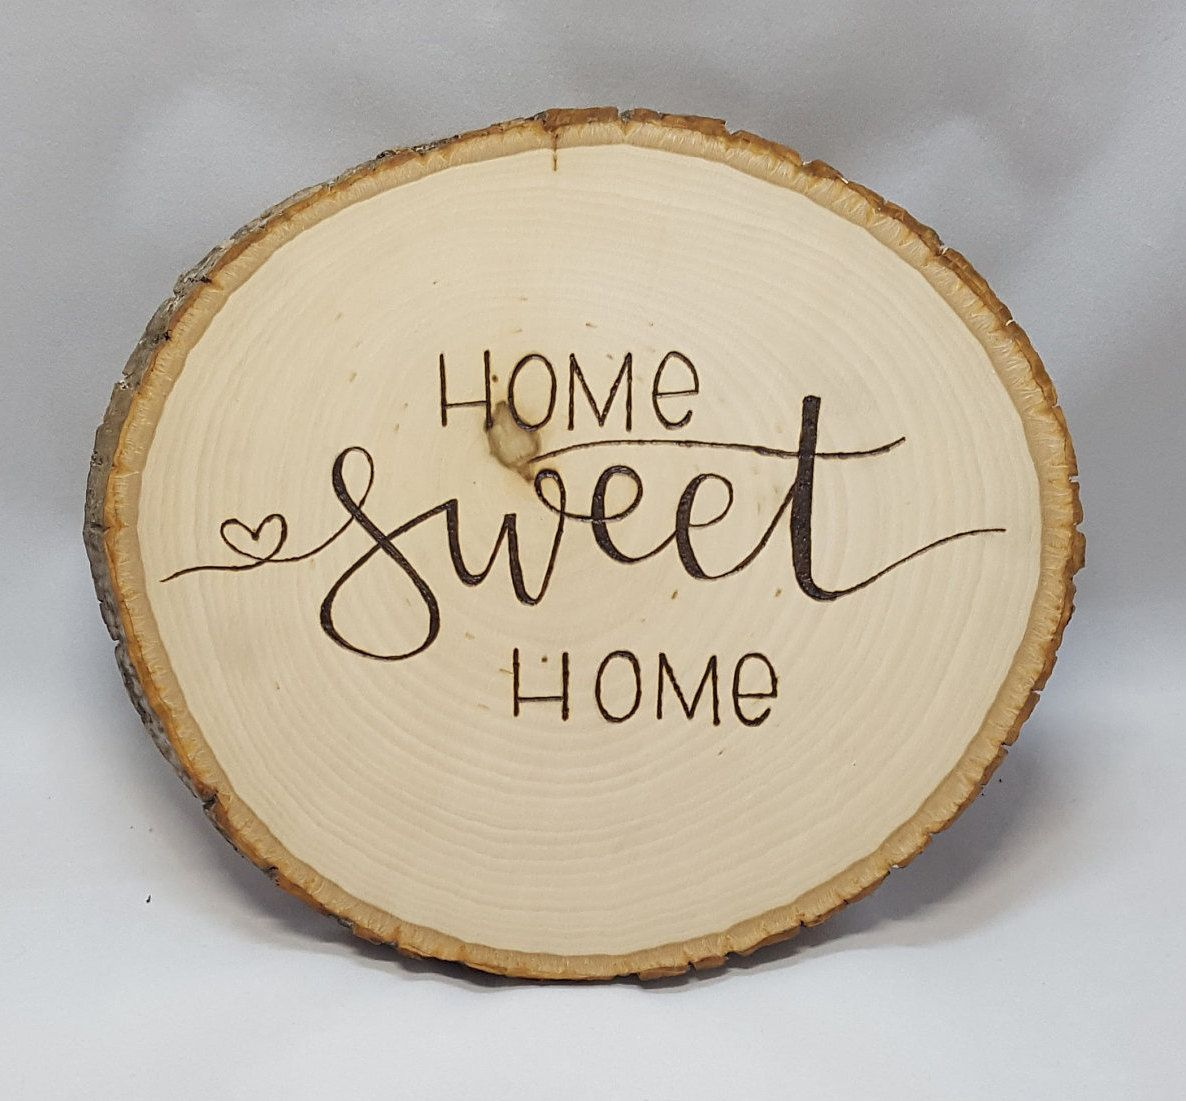 Home sweet home entrance sign tree round wall plaque wall art